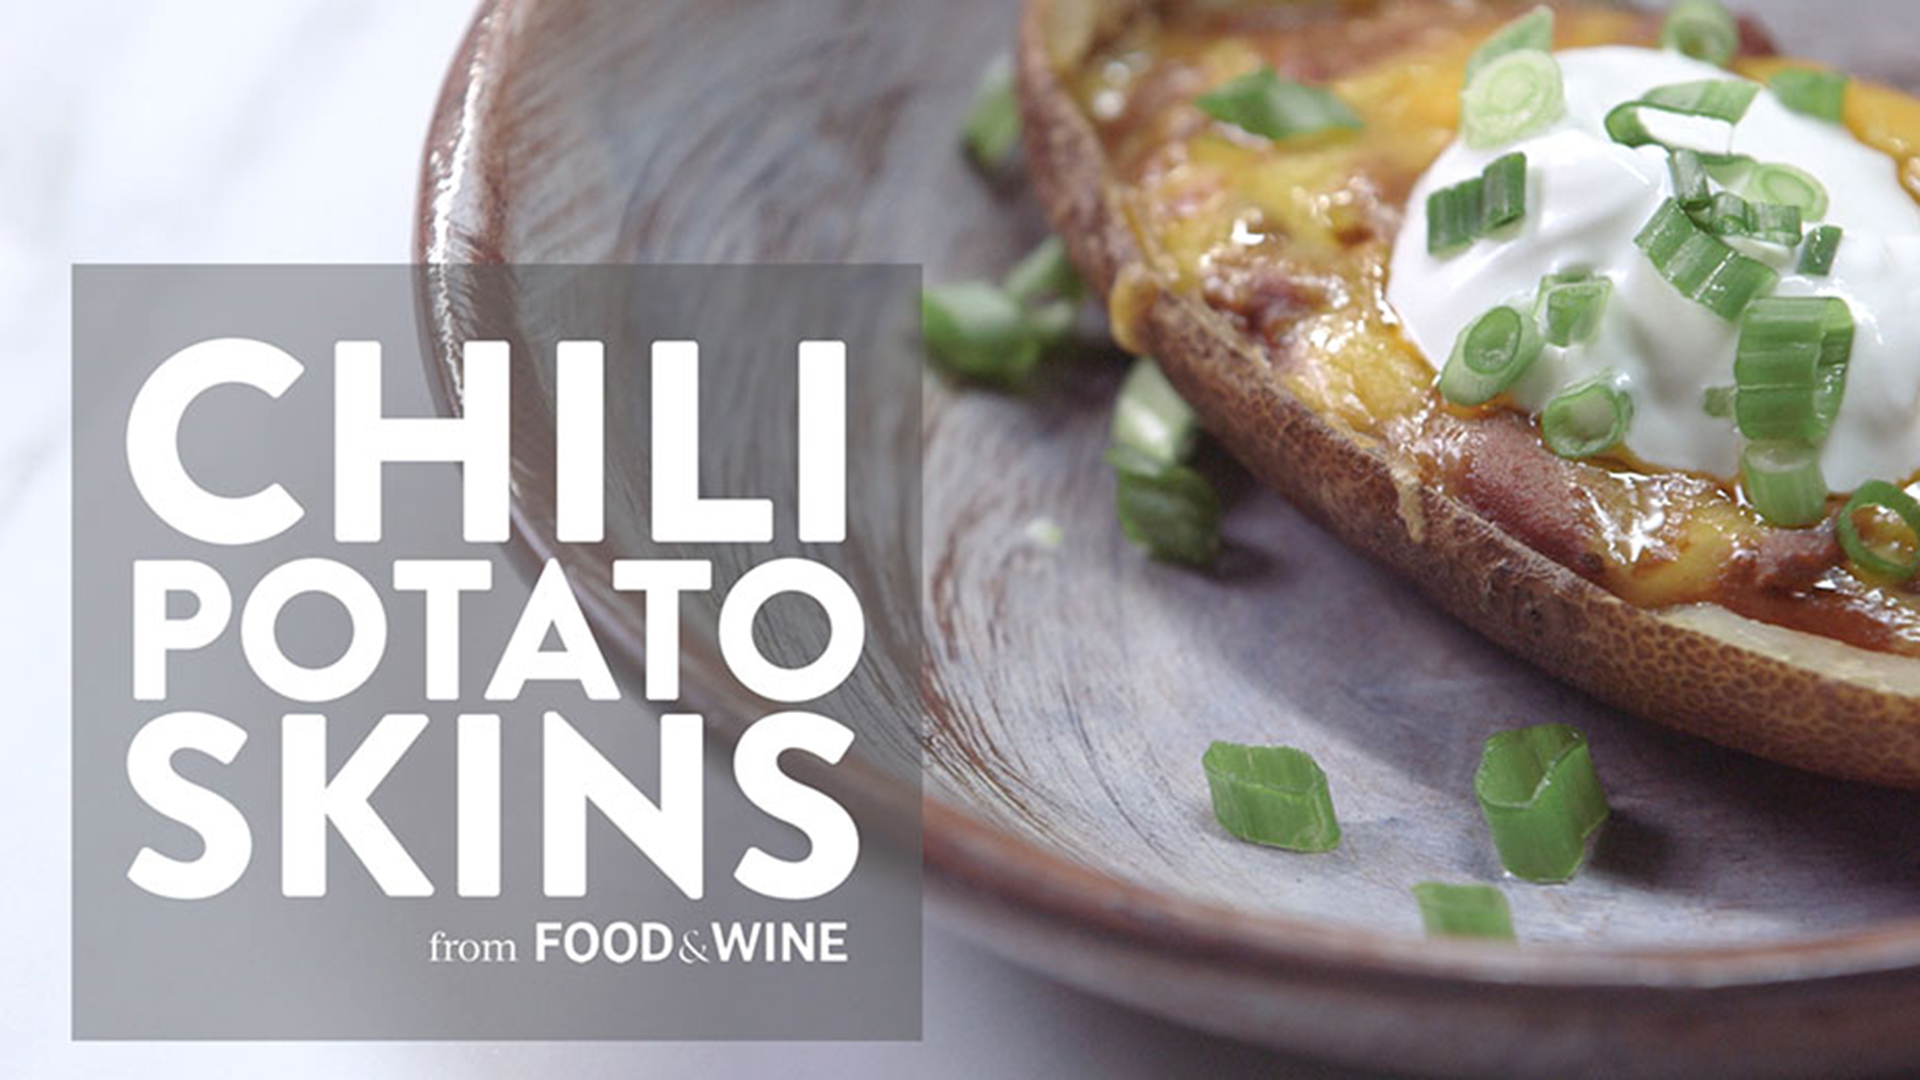 How to Make Chili Potato Skins